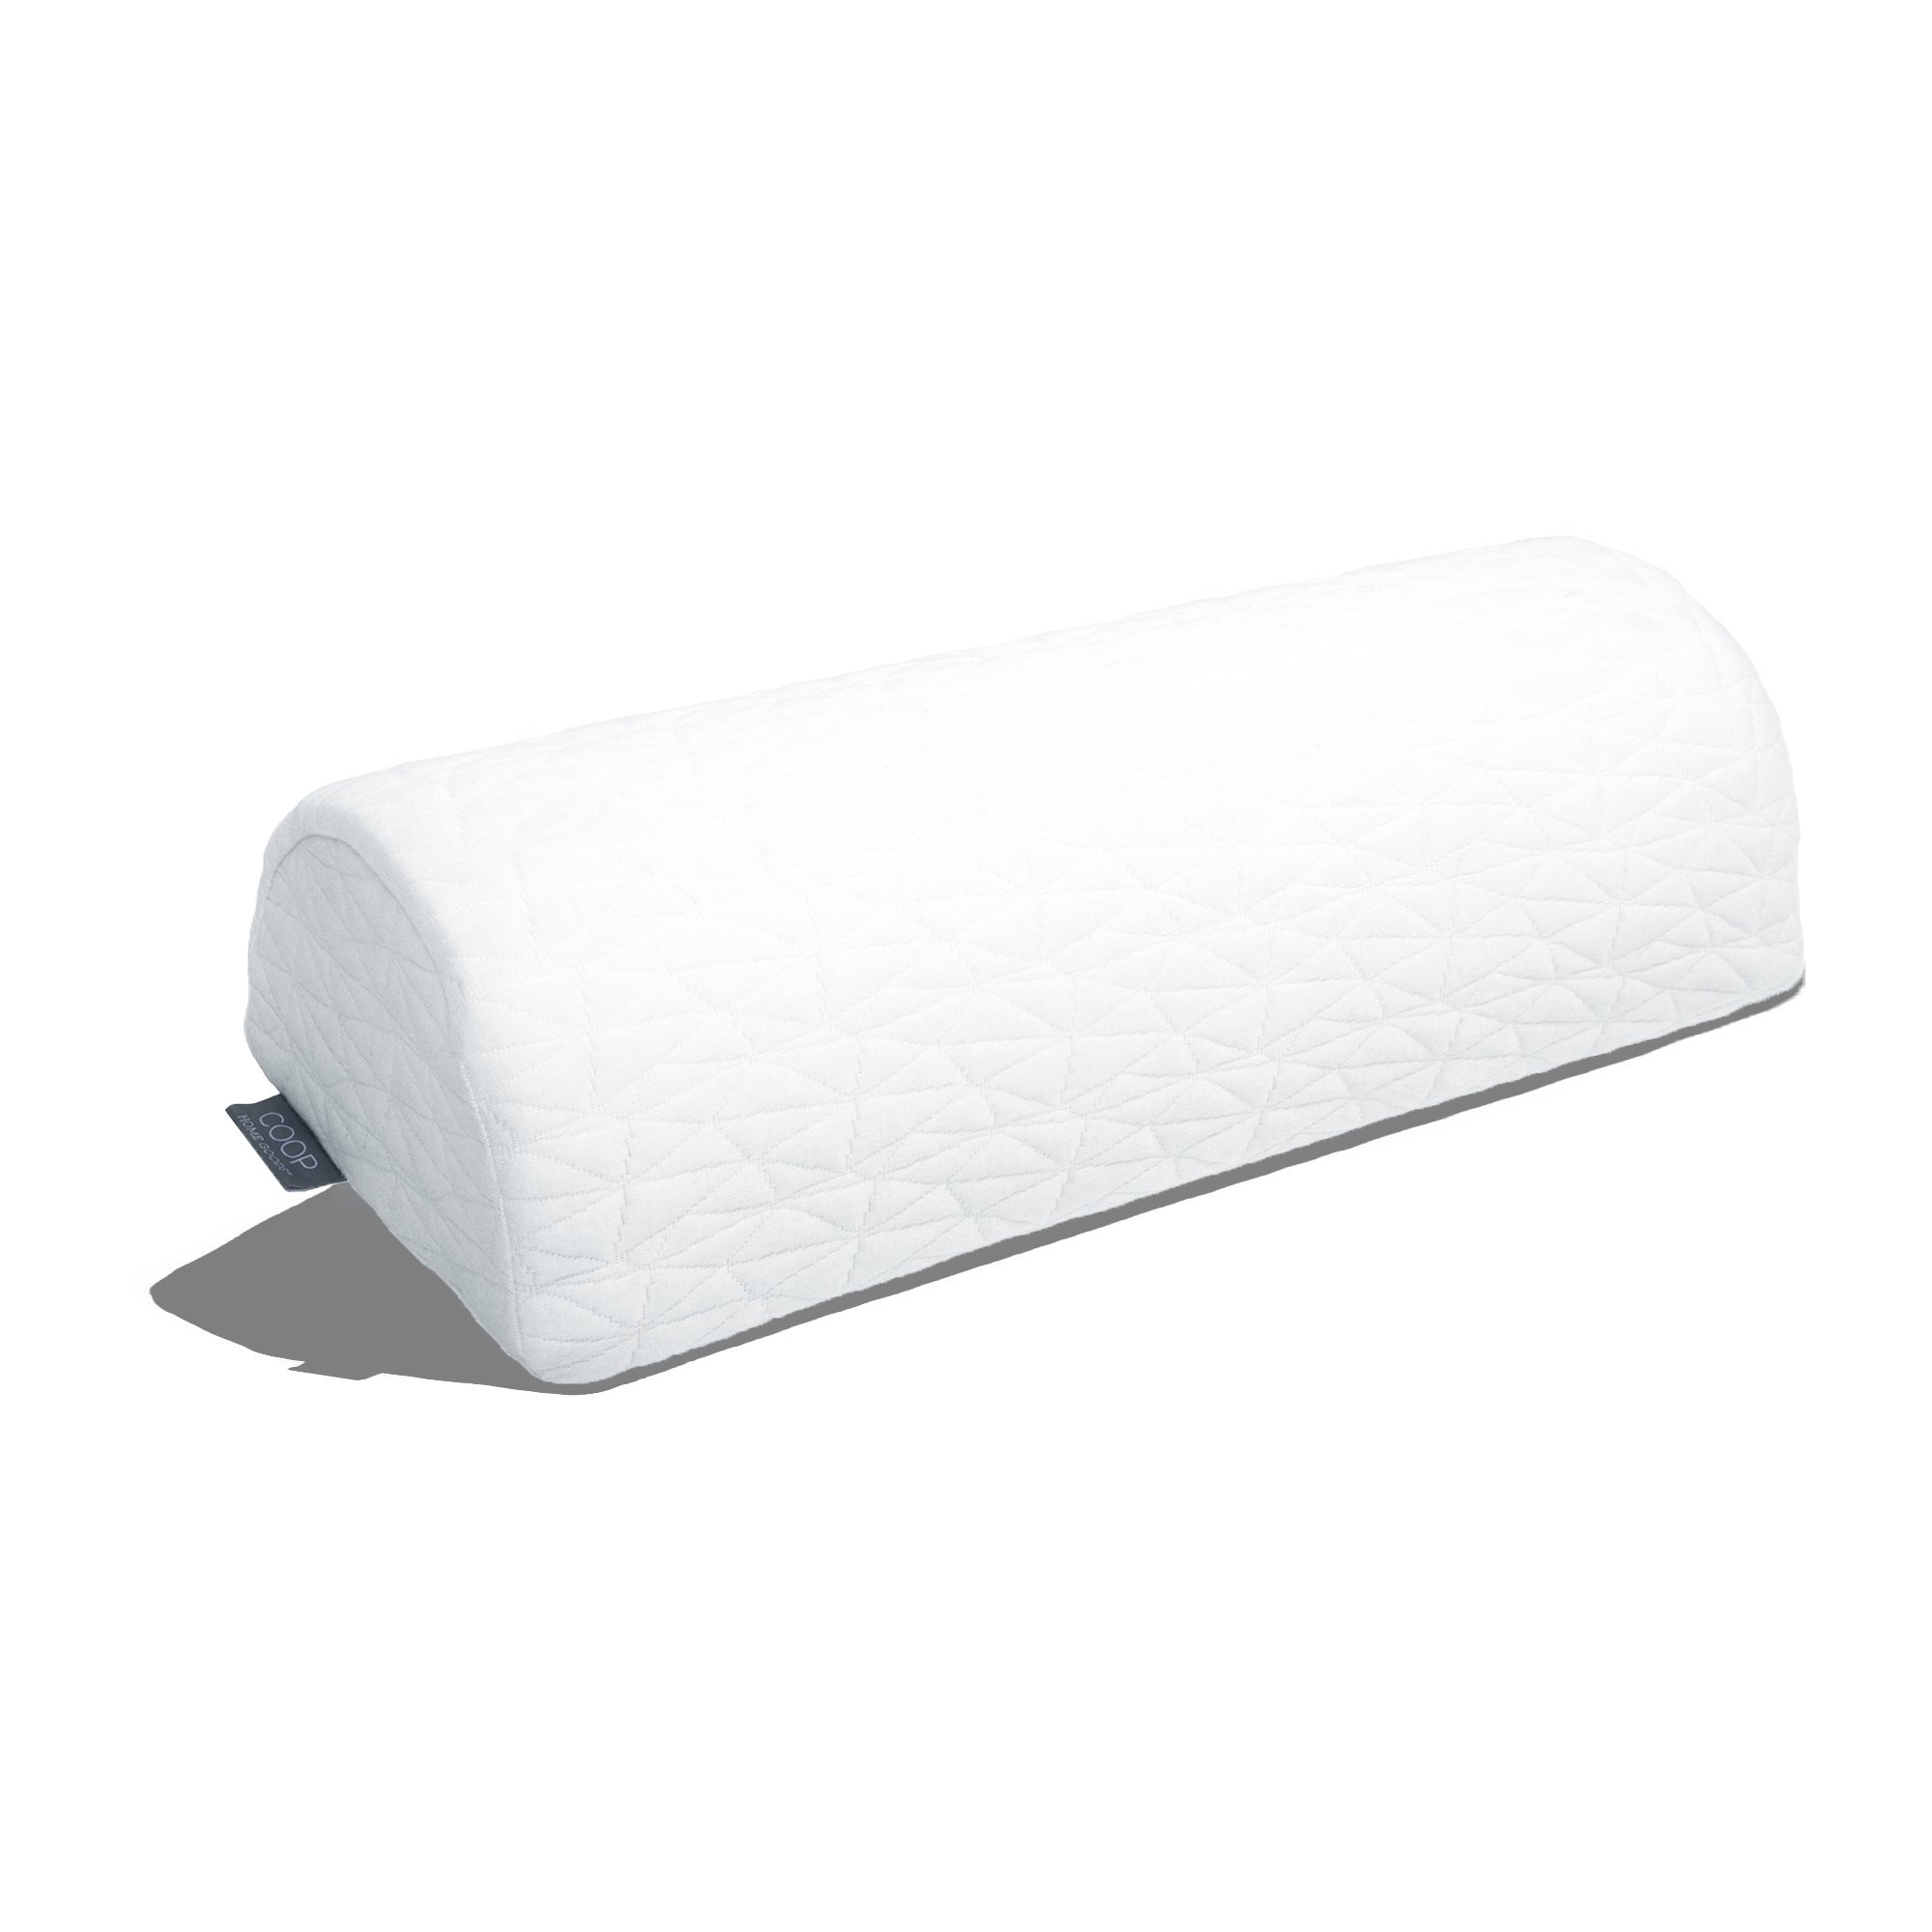 Coop Home Goods - 4 Position Half-Moon Bolster/Wedge Pillow with Adjustable Inserts - Memory Foam Support - Removable Lulltra Cover Bamboo Derived Rayon - Helps Relieve Back, Neck, Knee & Ankle Pain by Coop Home Goods